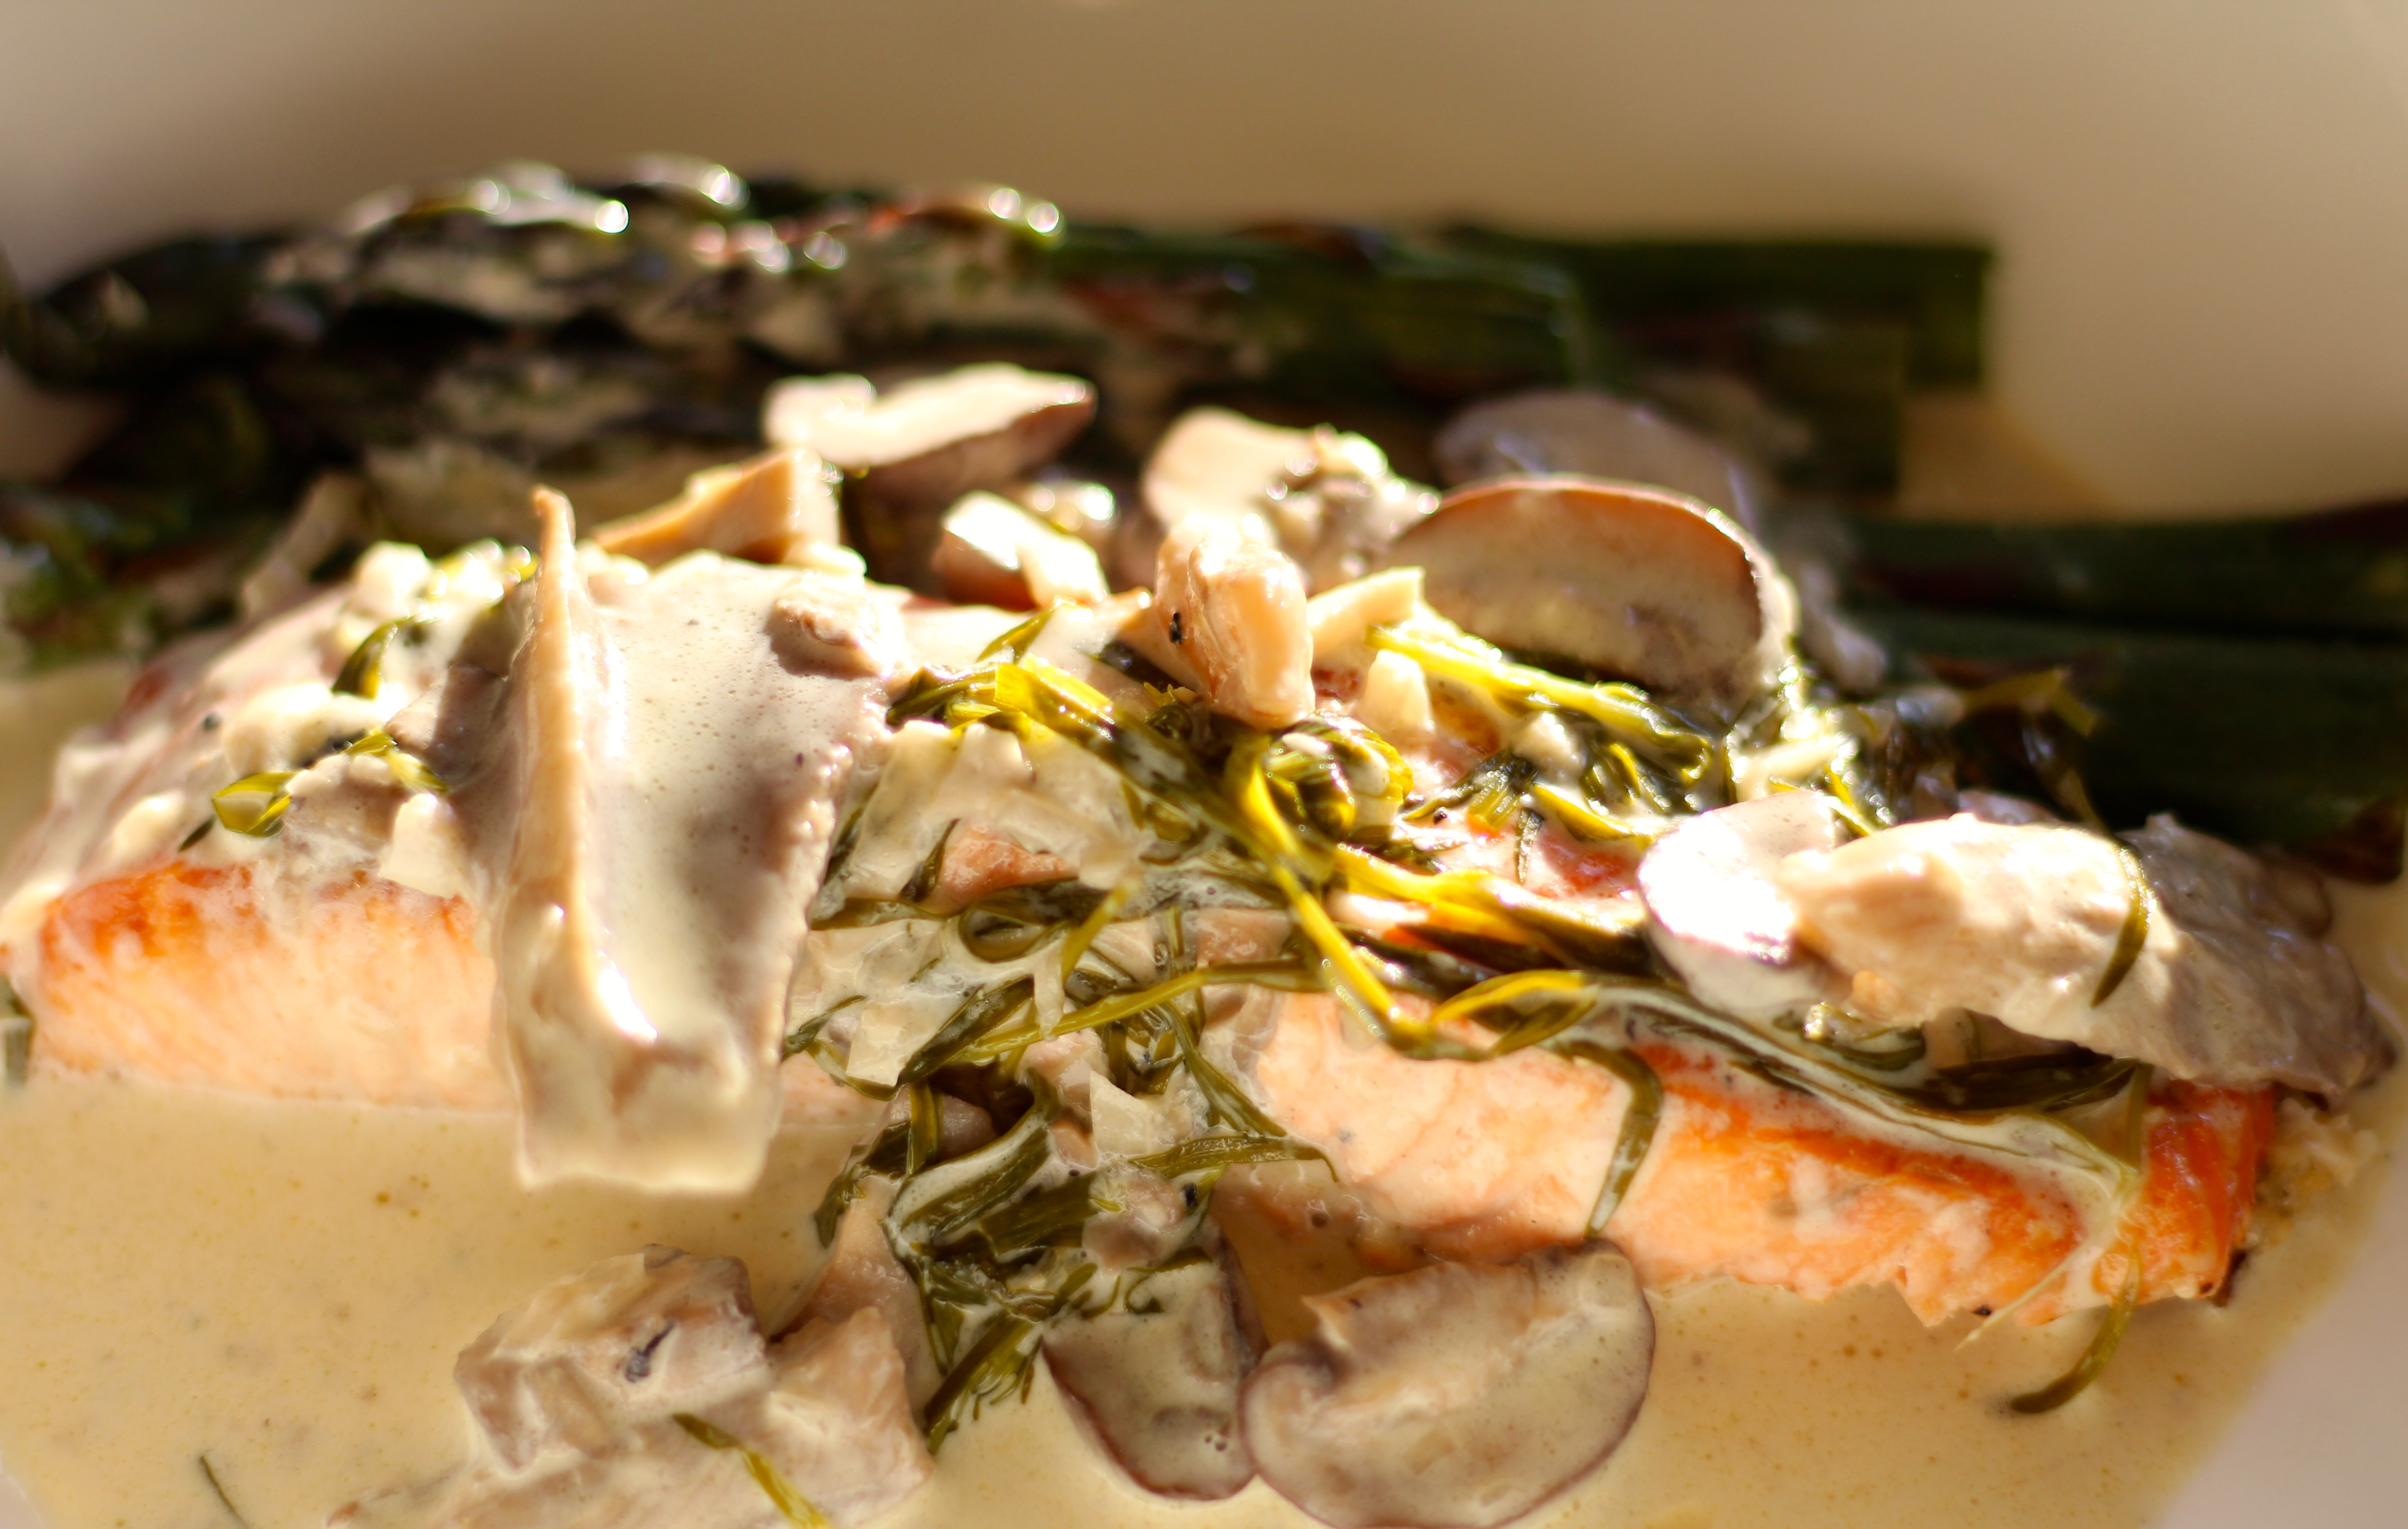 SALMON IN CHAMPAGNE SAUCE